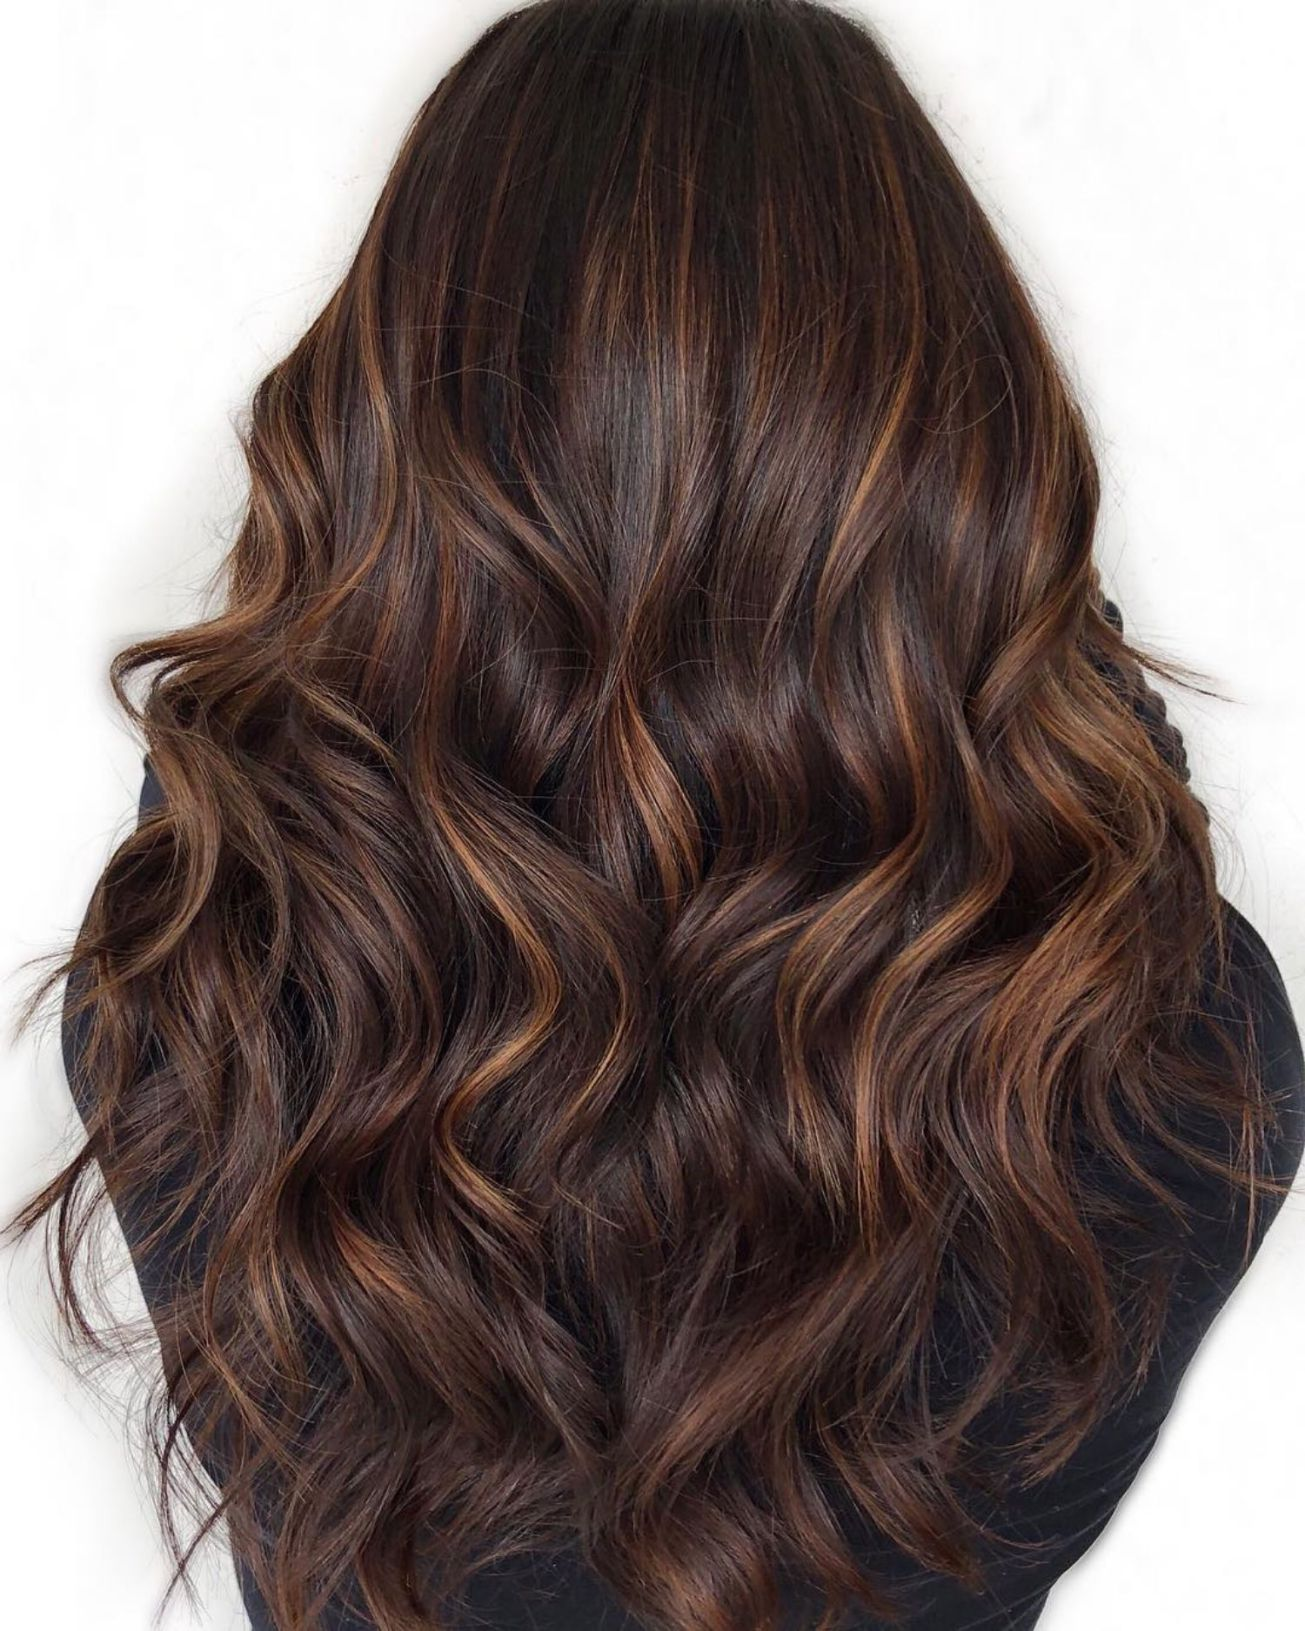 60 Looks With Caramel Highlights On Brown And Dark Brown Hair Hair Styles Dark Hair With Highlights Brown Hair Shades